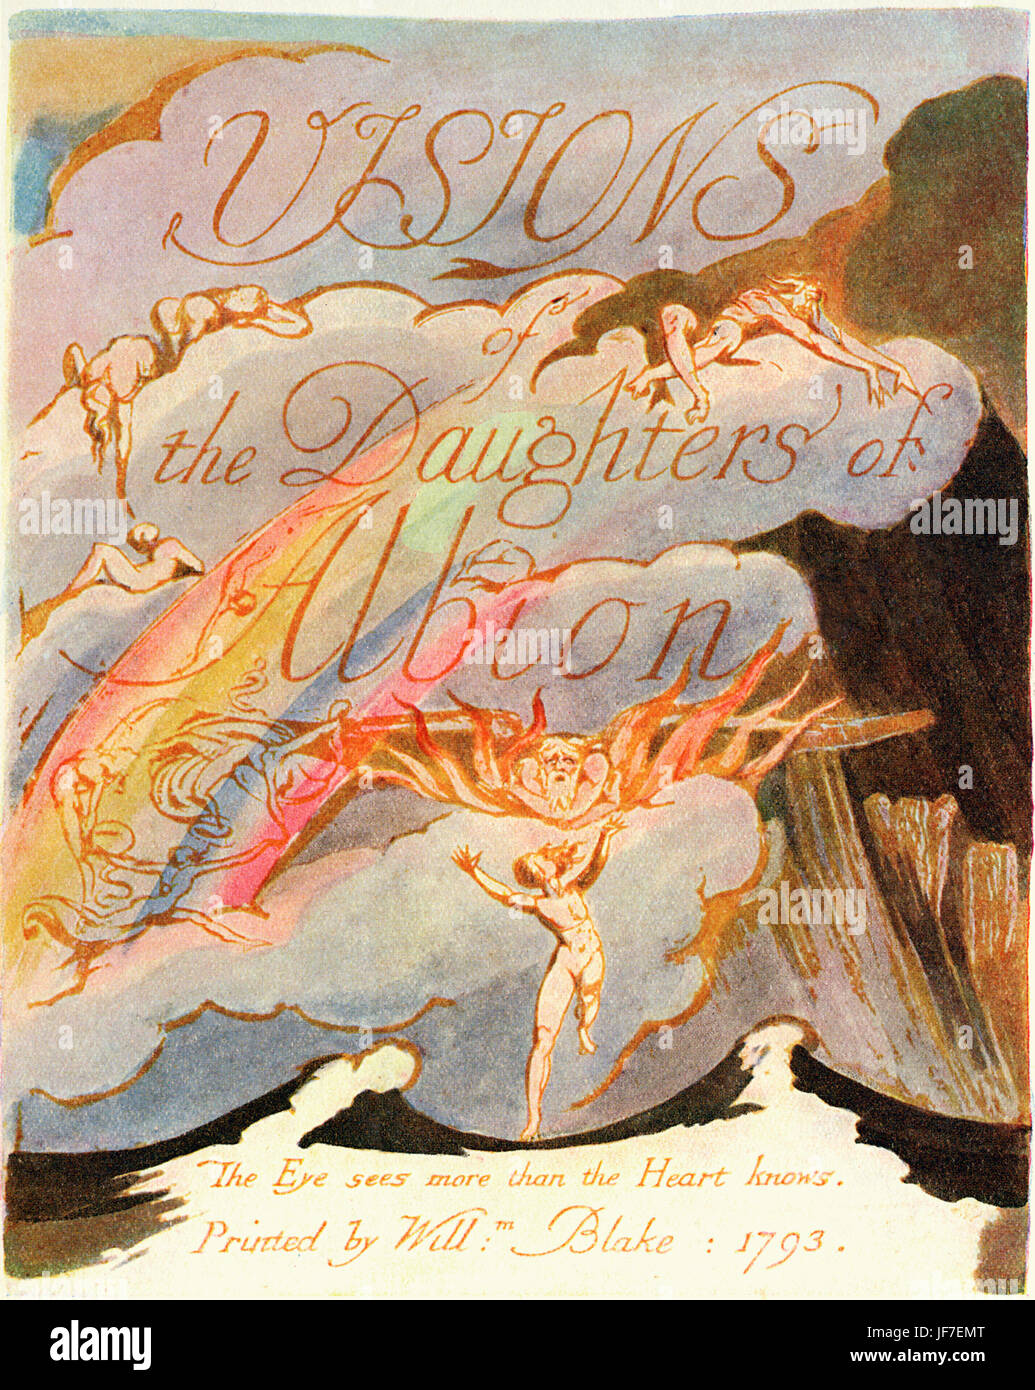 William Blake 's illustration for his poem' Visions of the Daughters of Albion' (1793). Title Page. - Stock Image